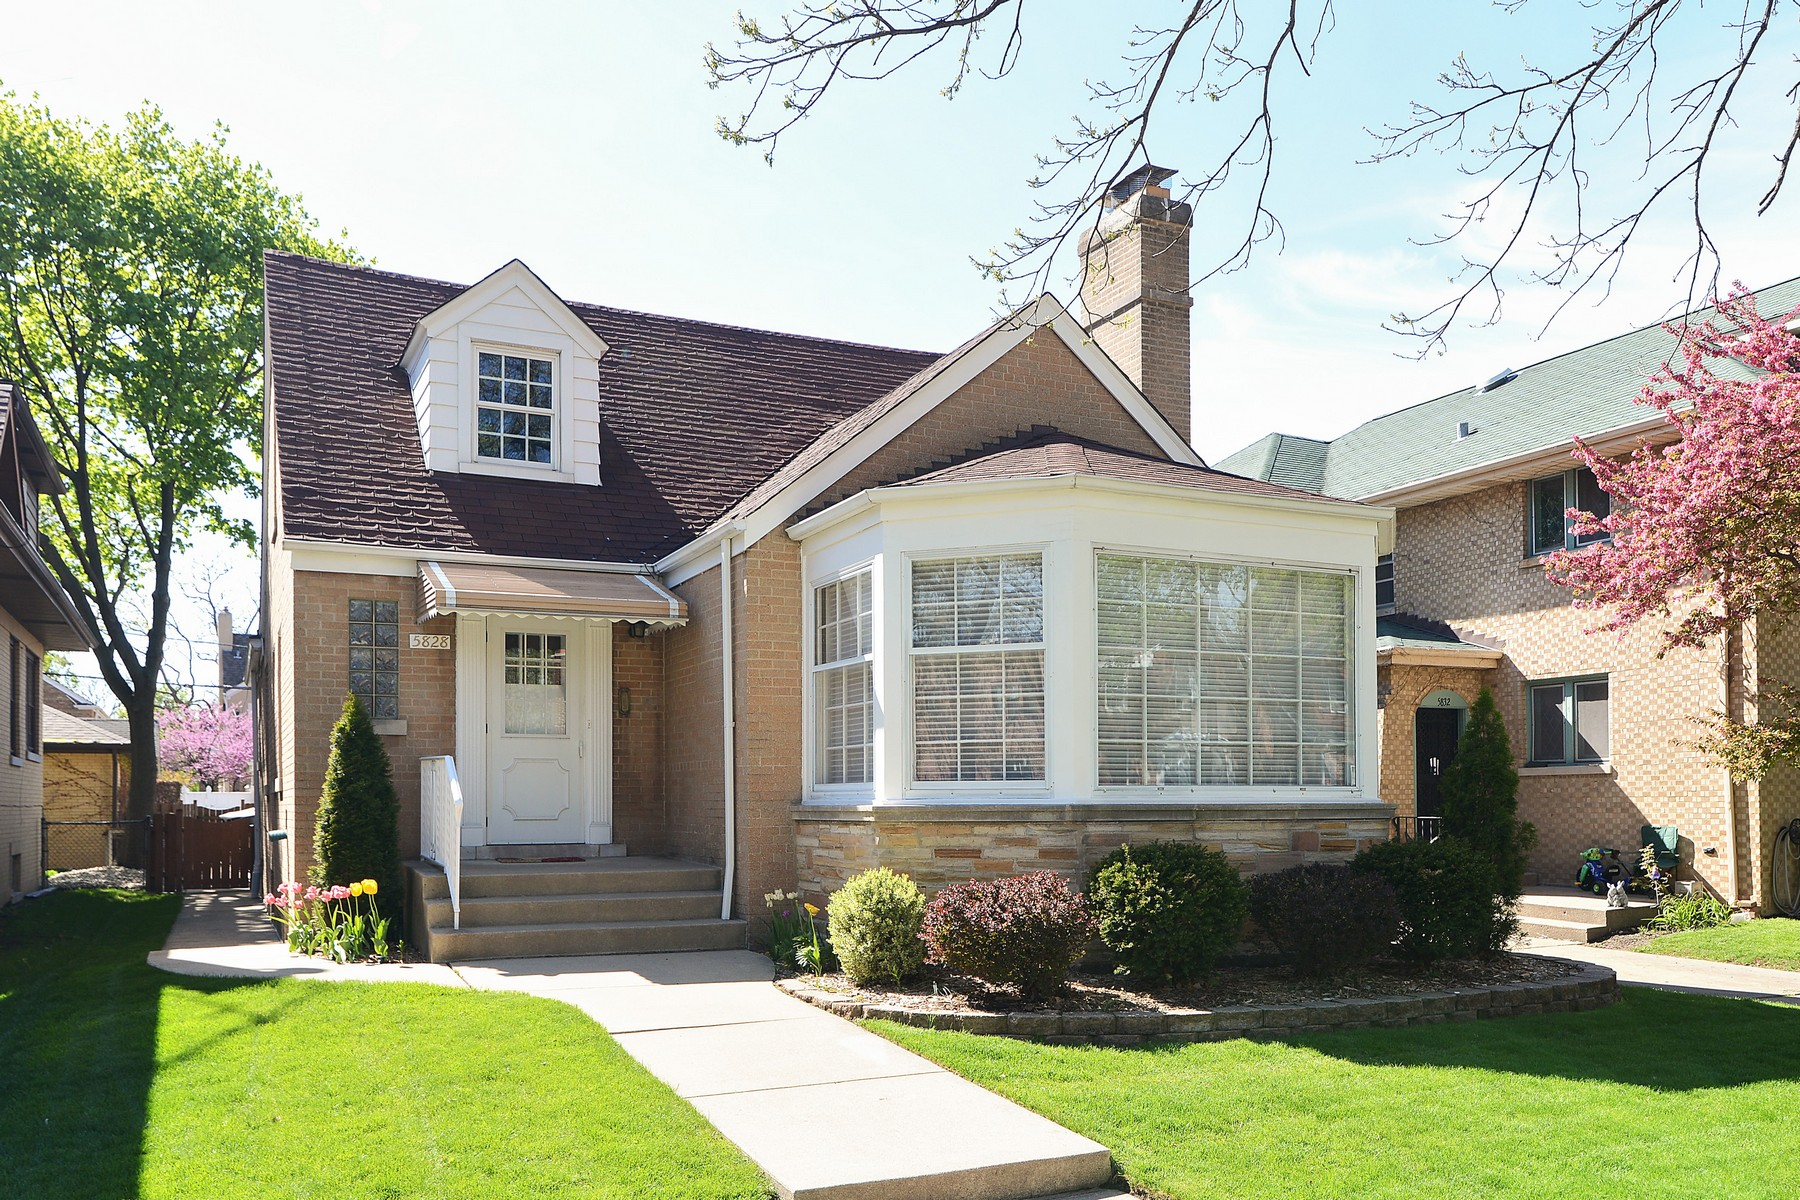 Single Family Home for Sale at Sunny Bungalow in Sauganash 5828 N Kilbourn Avenue Forest Glen, Chicago, Illinois, 60646 United States